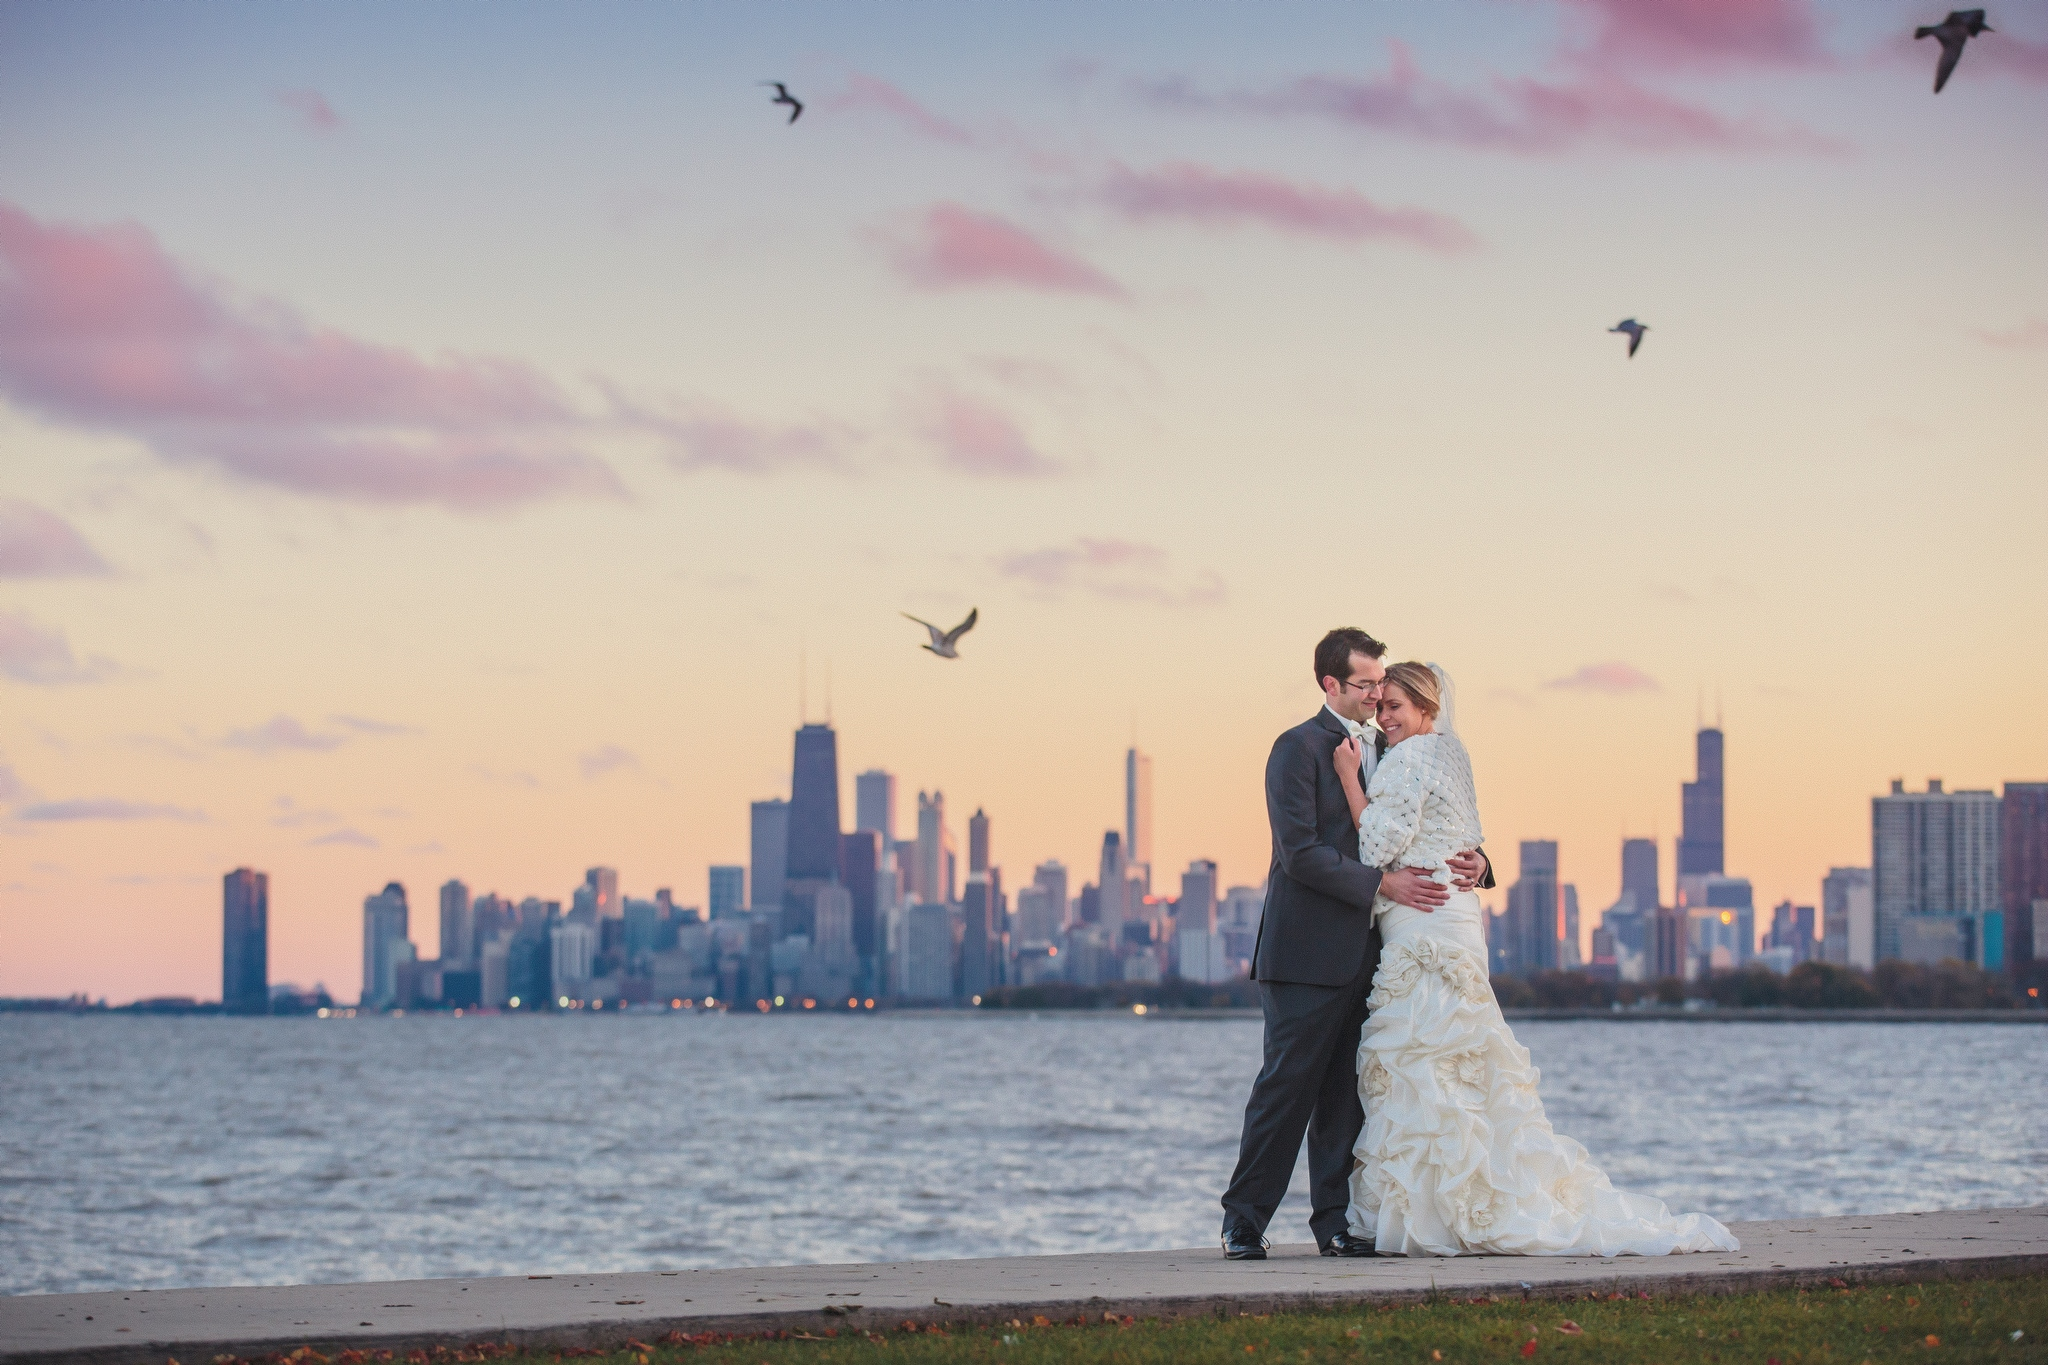 Sunset Chicago Skyline Bride & Groom Copyrighted Photography by Wes Craft